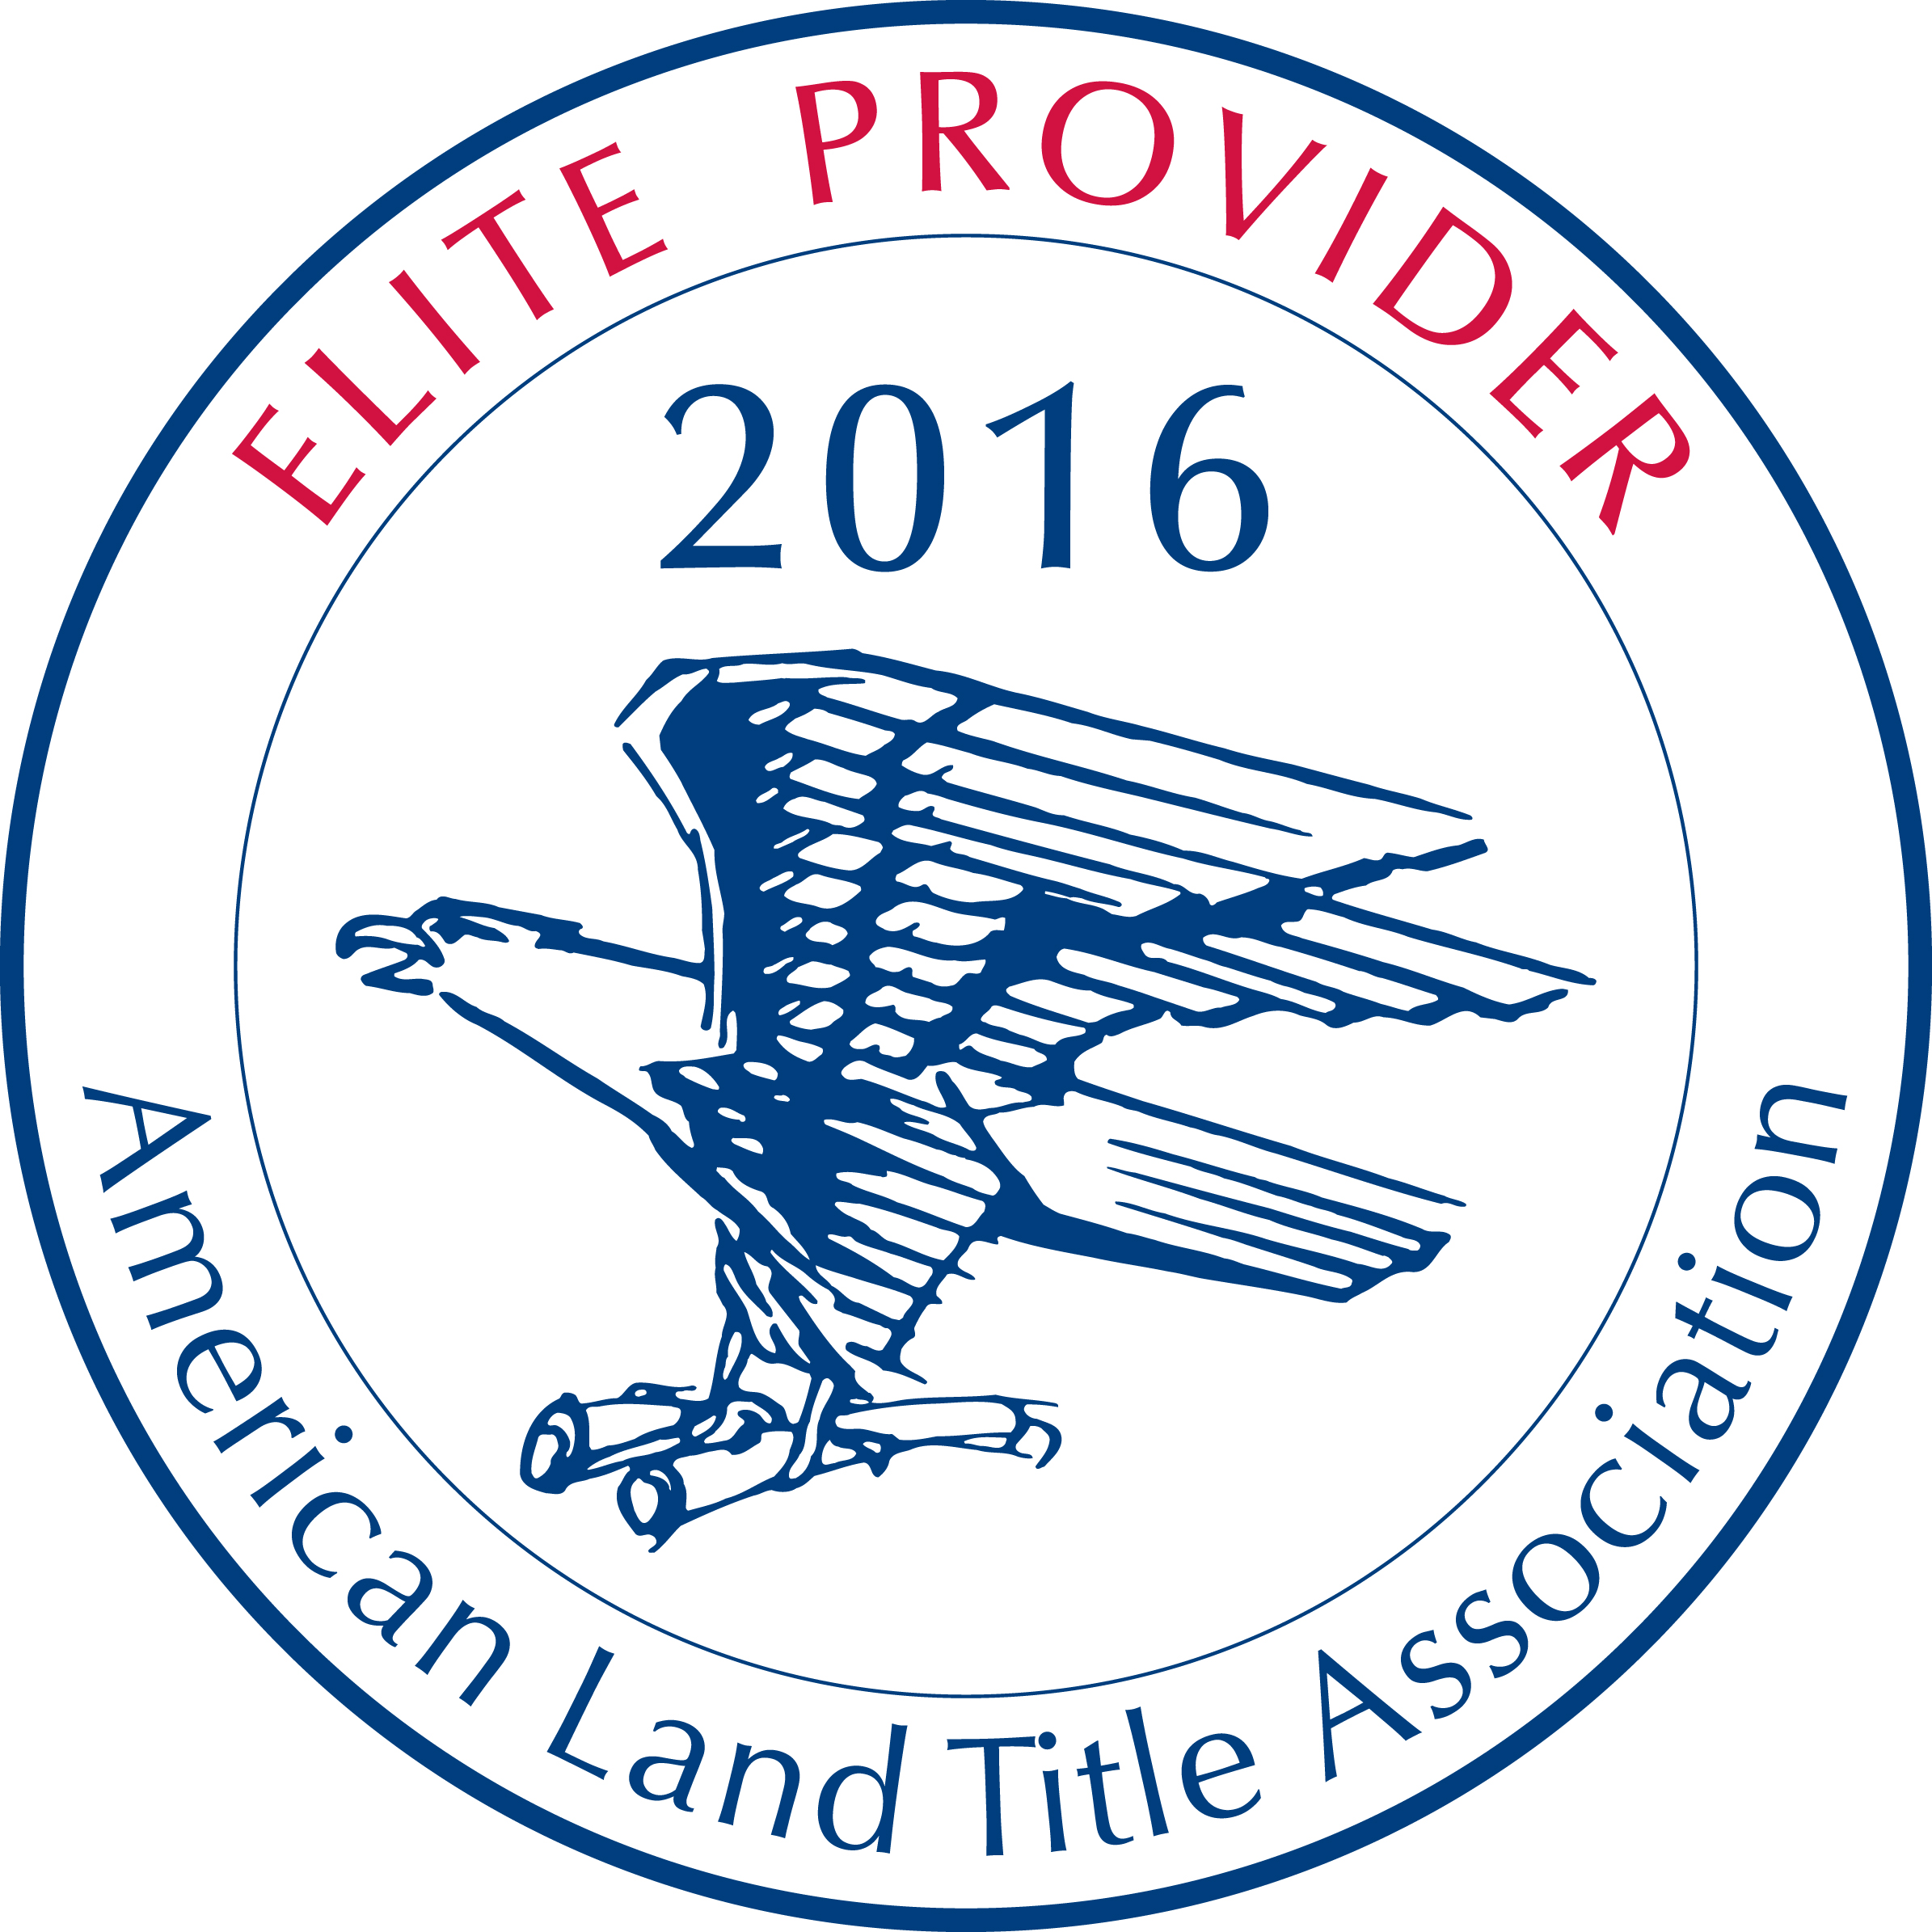 2016_Elite_Providers_Logo.jpg